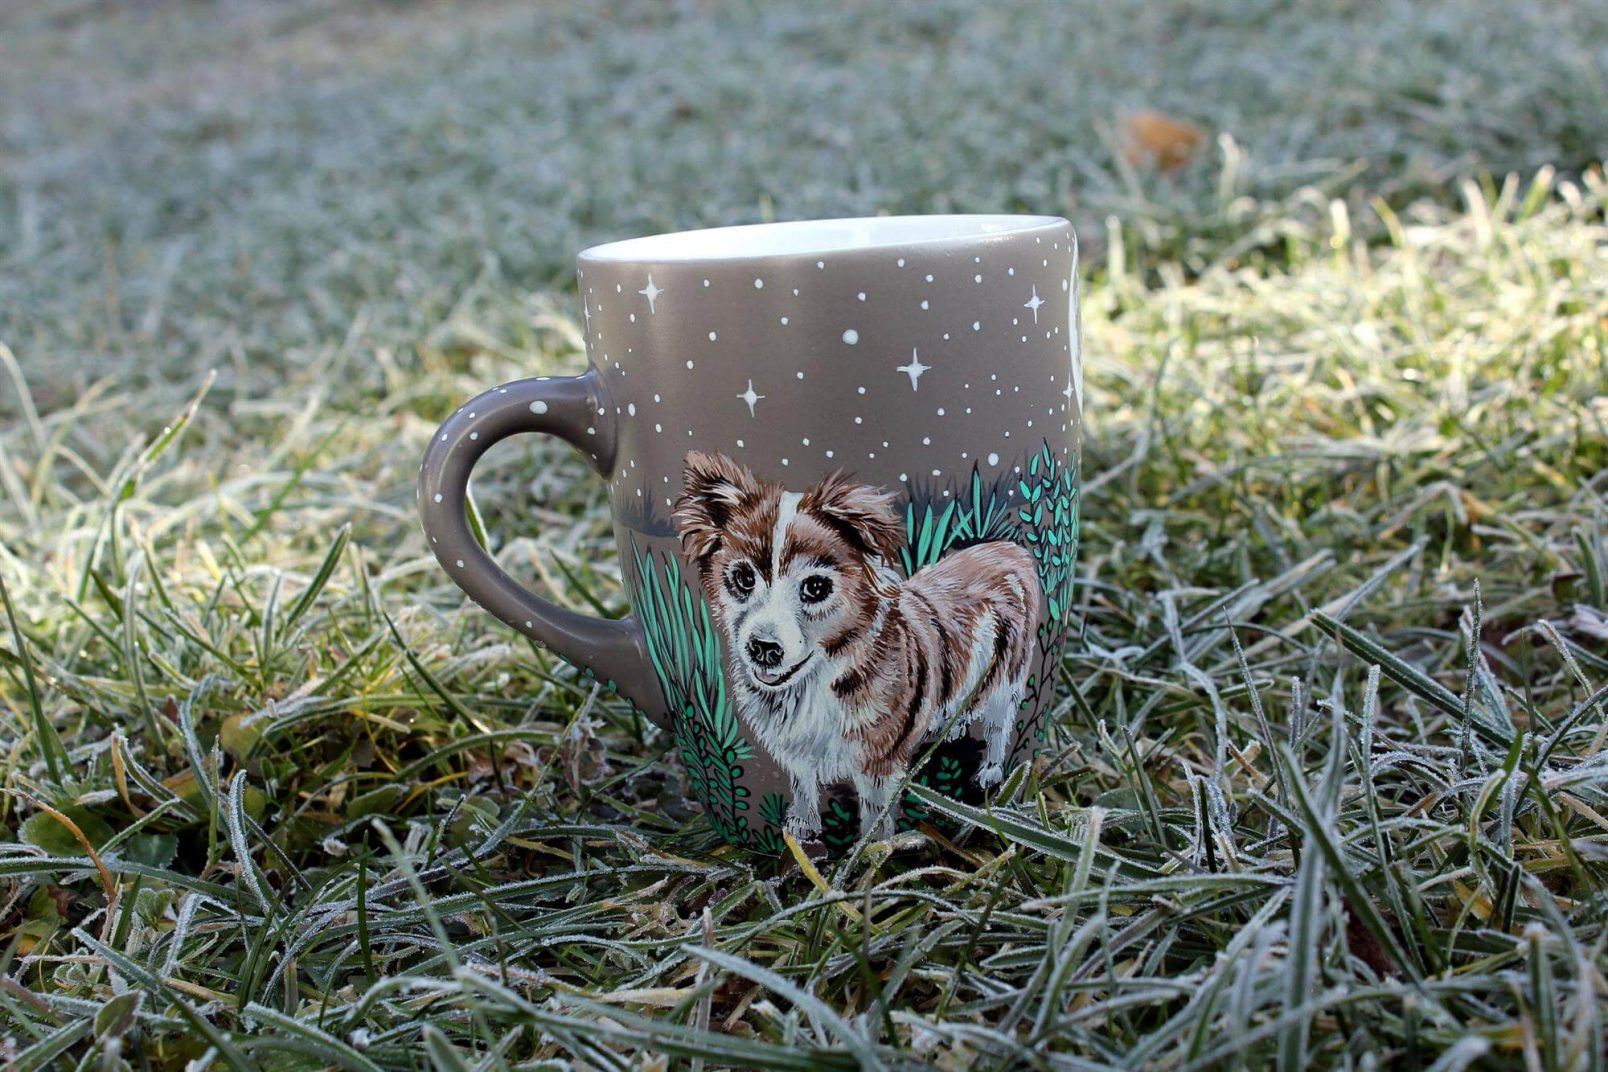 Personalizet custom pet mug coffe tea cup hand painted handmade illustration mug pet forest meadow bird cat moon grass pine trees mug etsy store 3